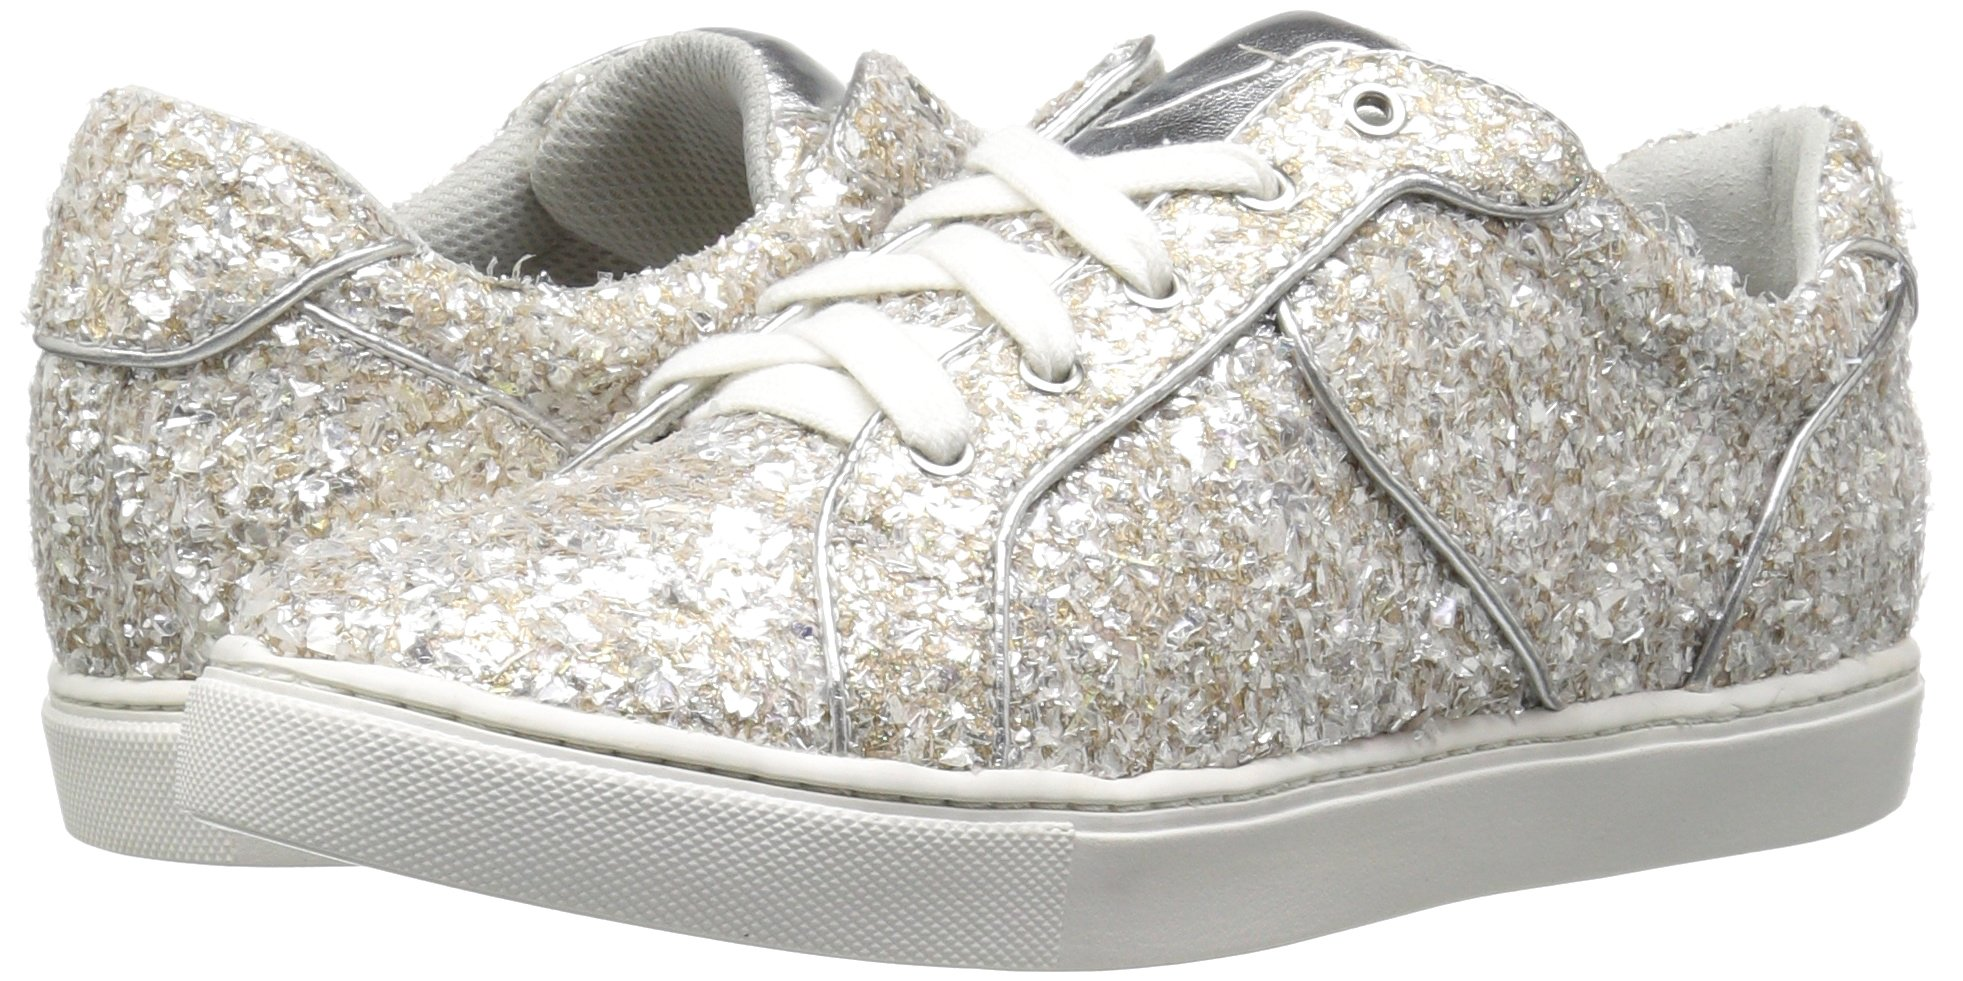 The Fix Women's Tawny Lace-up Fashion Sneaker, Silver Ice, 7.5 B US by The Fix (Image #6)